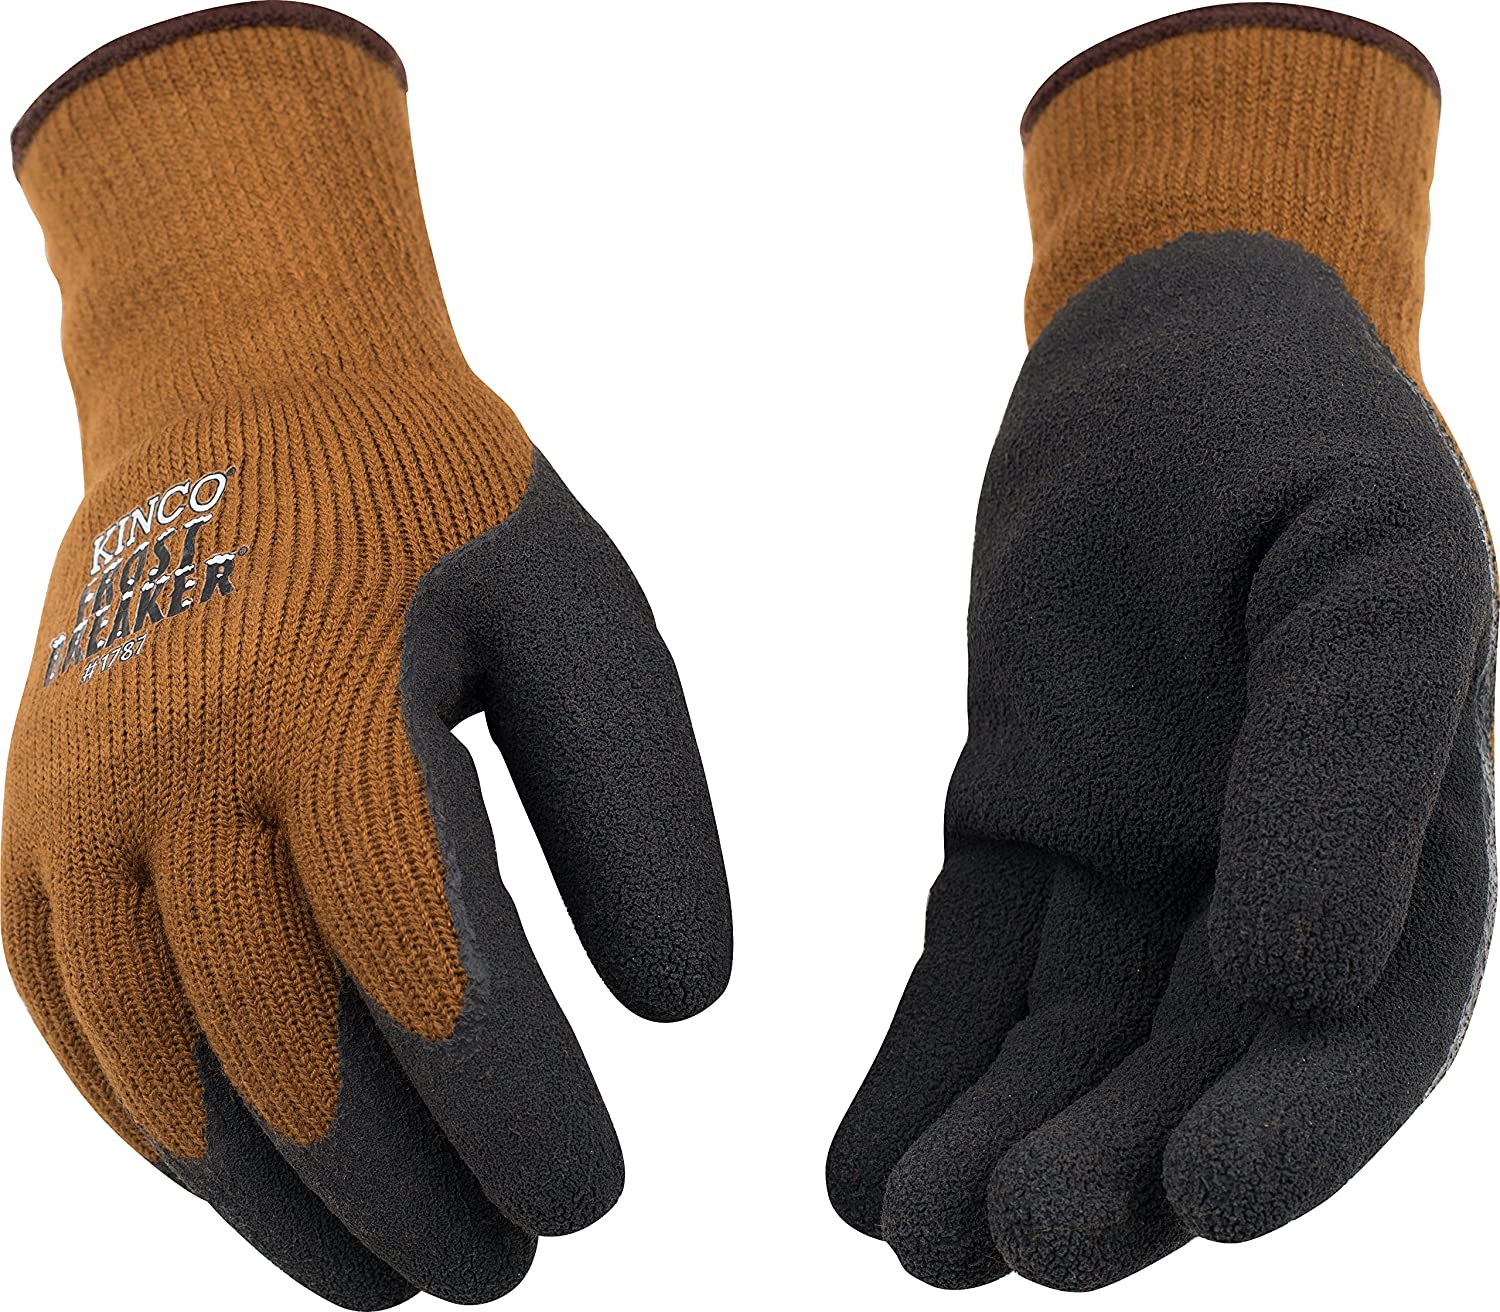 Kinco 1787 Frostbreaker Foam Latex Form Fitting Thermal Gripping Glove, Work, X-Large, Brown (Pack of 6 Pairs) by KINCO INTERNATIONAL 1787-XL-6PK